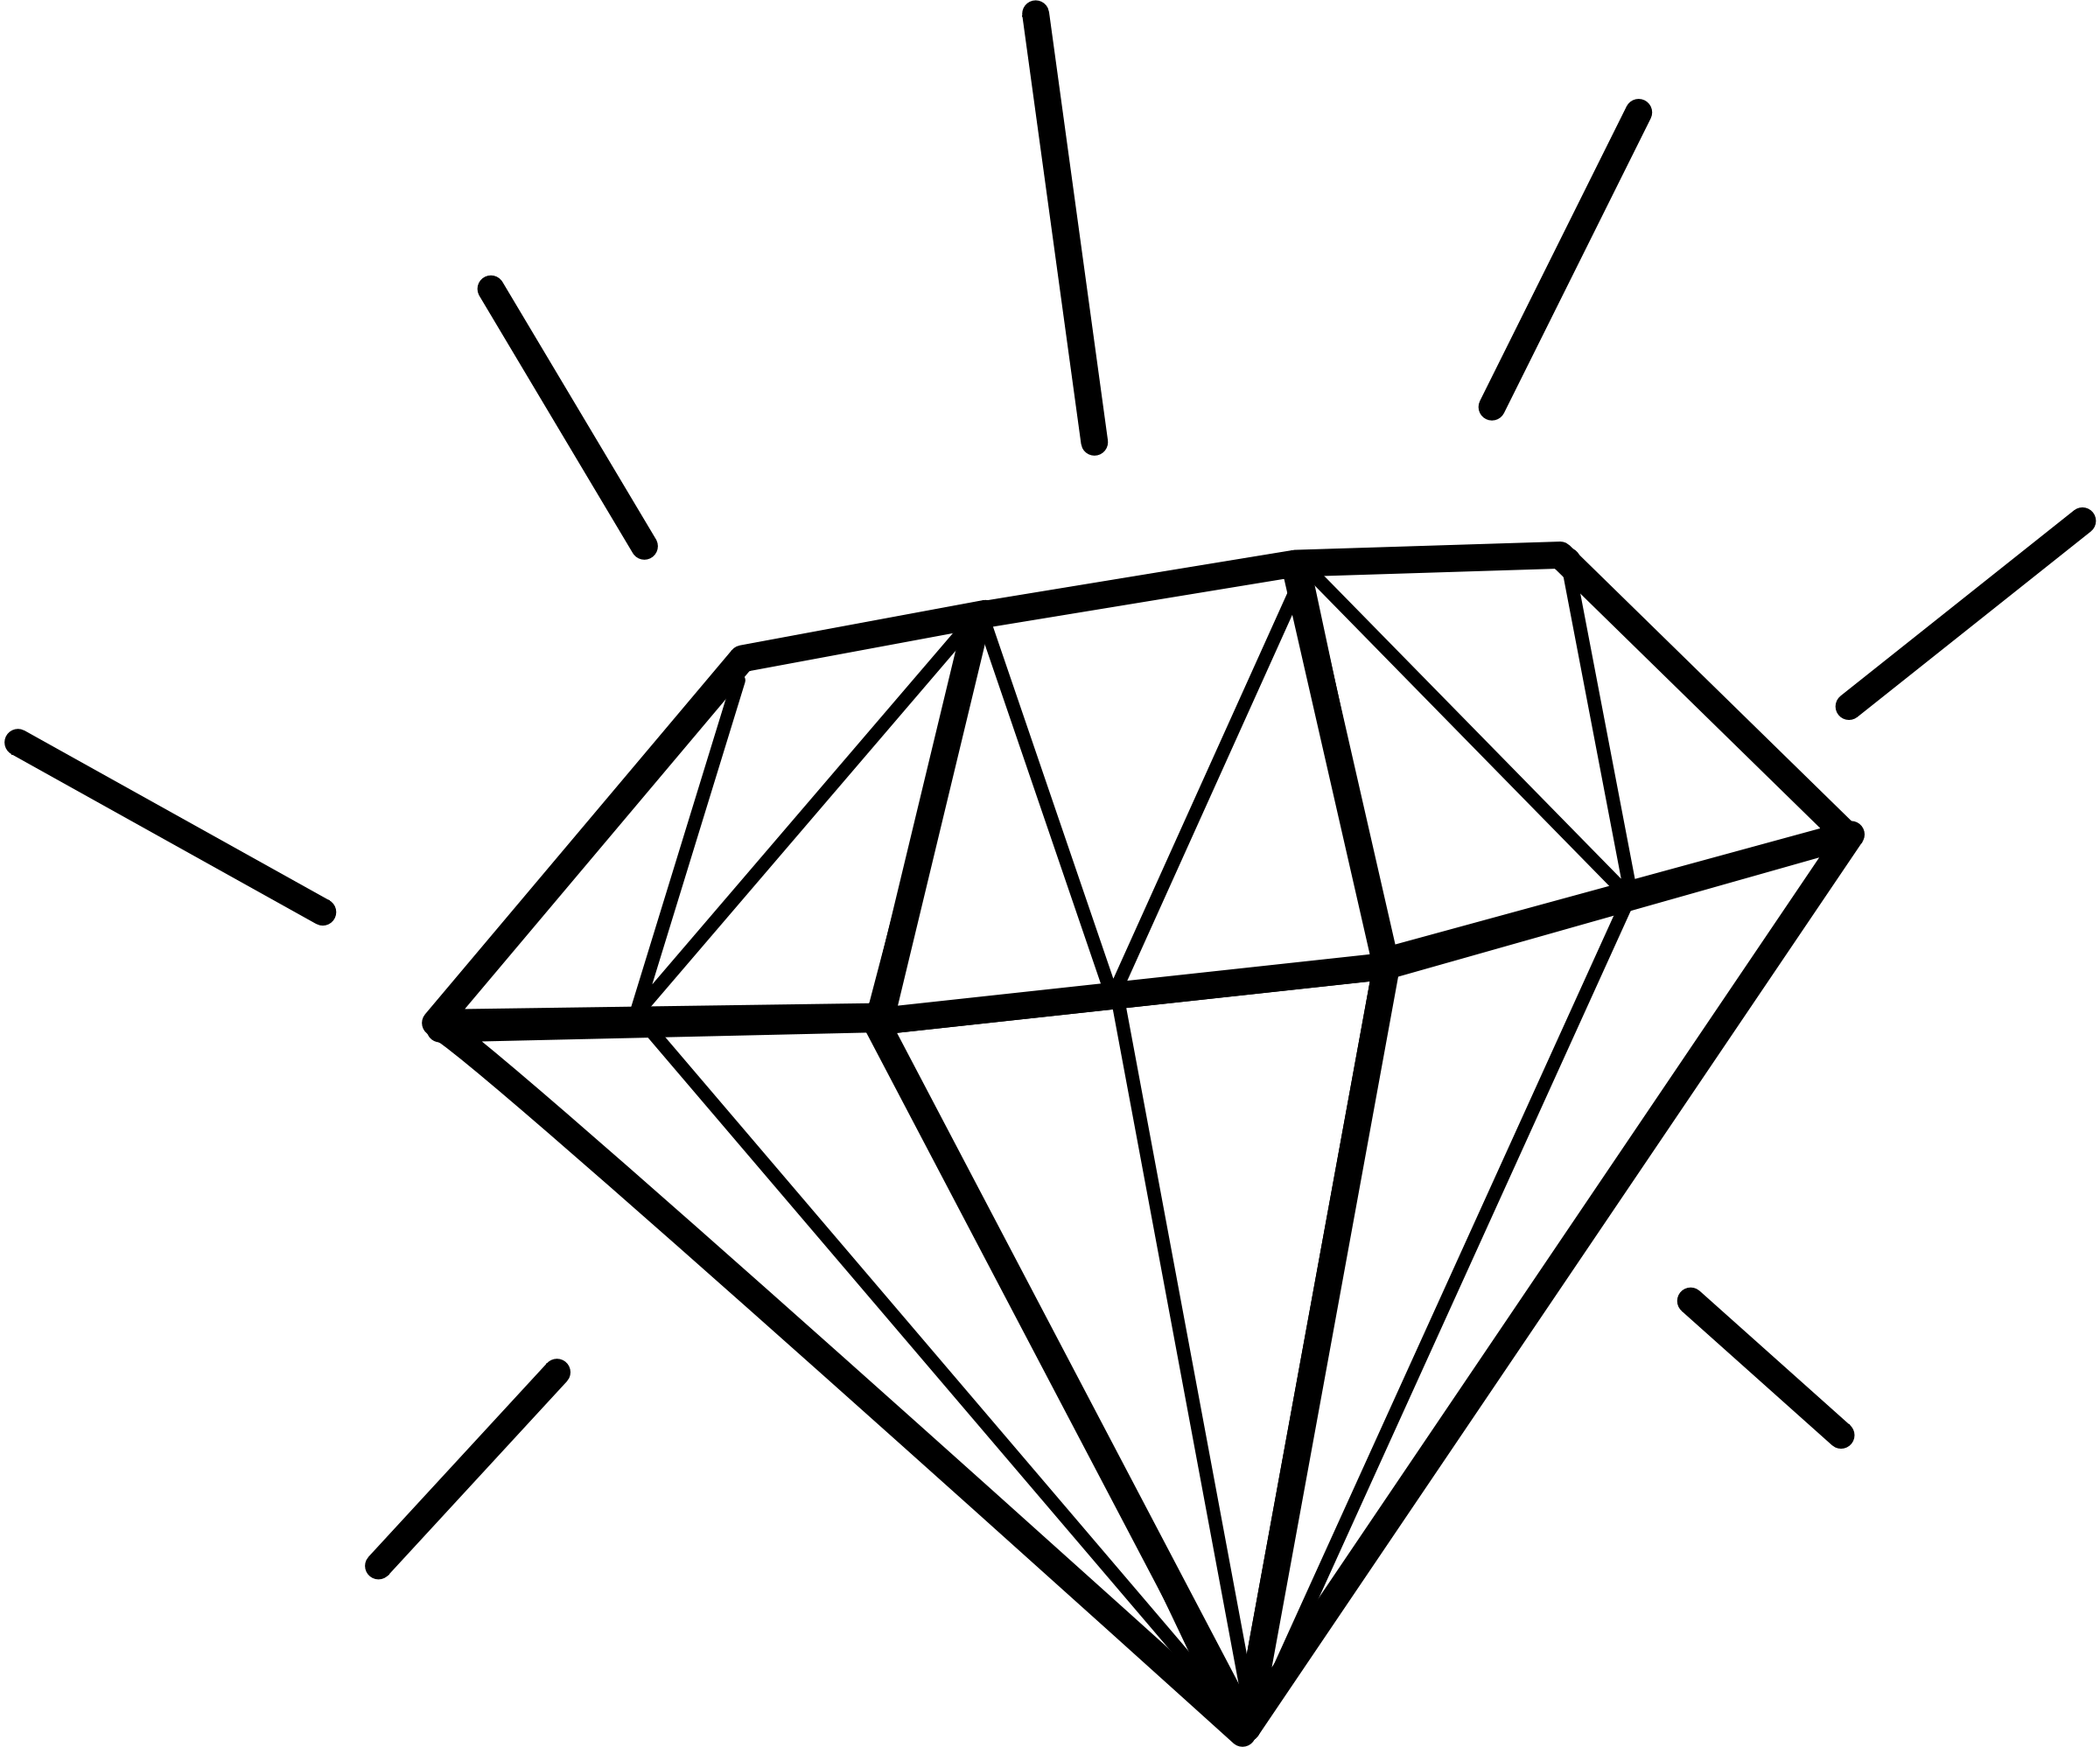 Line Drawing Diamond : Diamond clip art cliparts